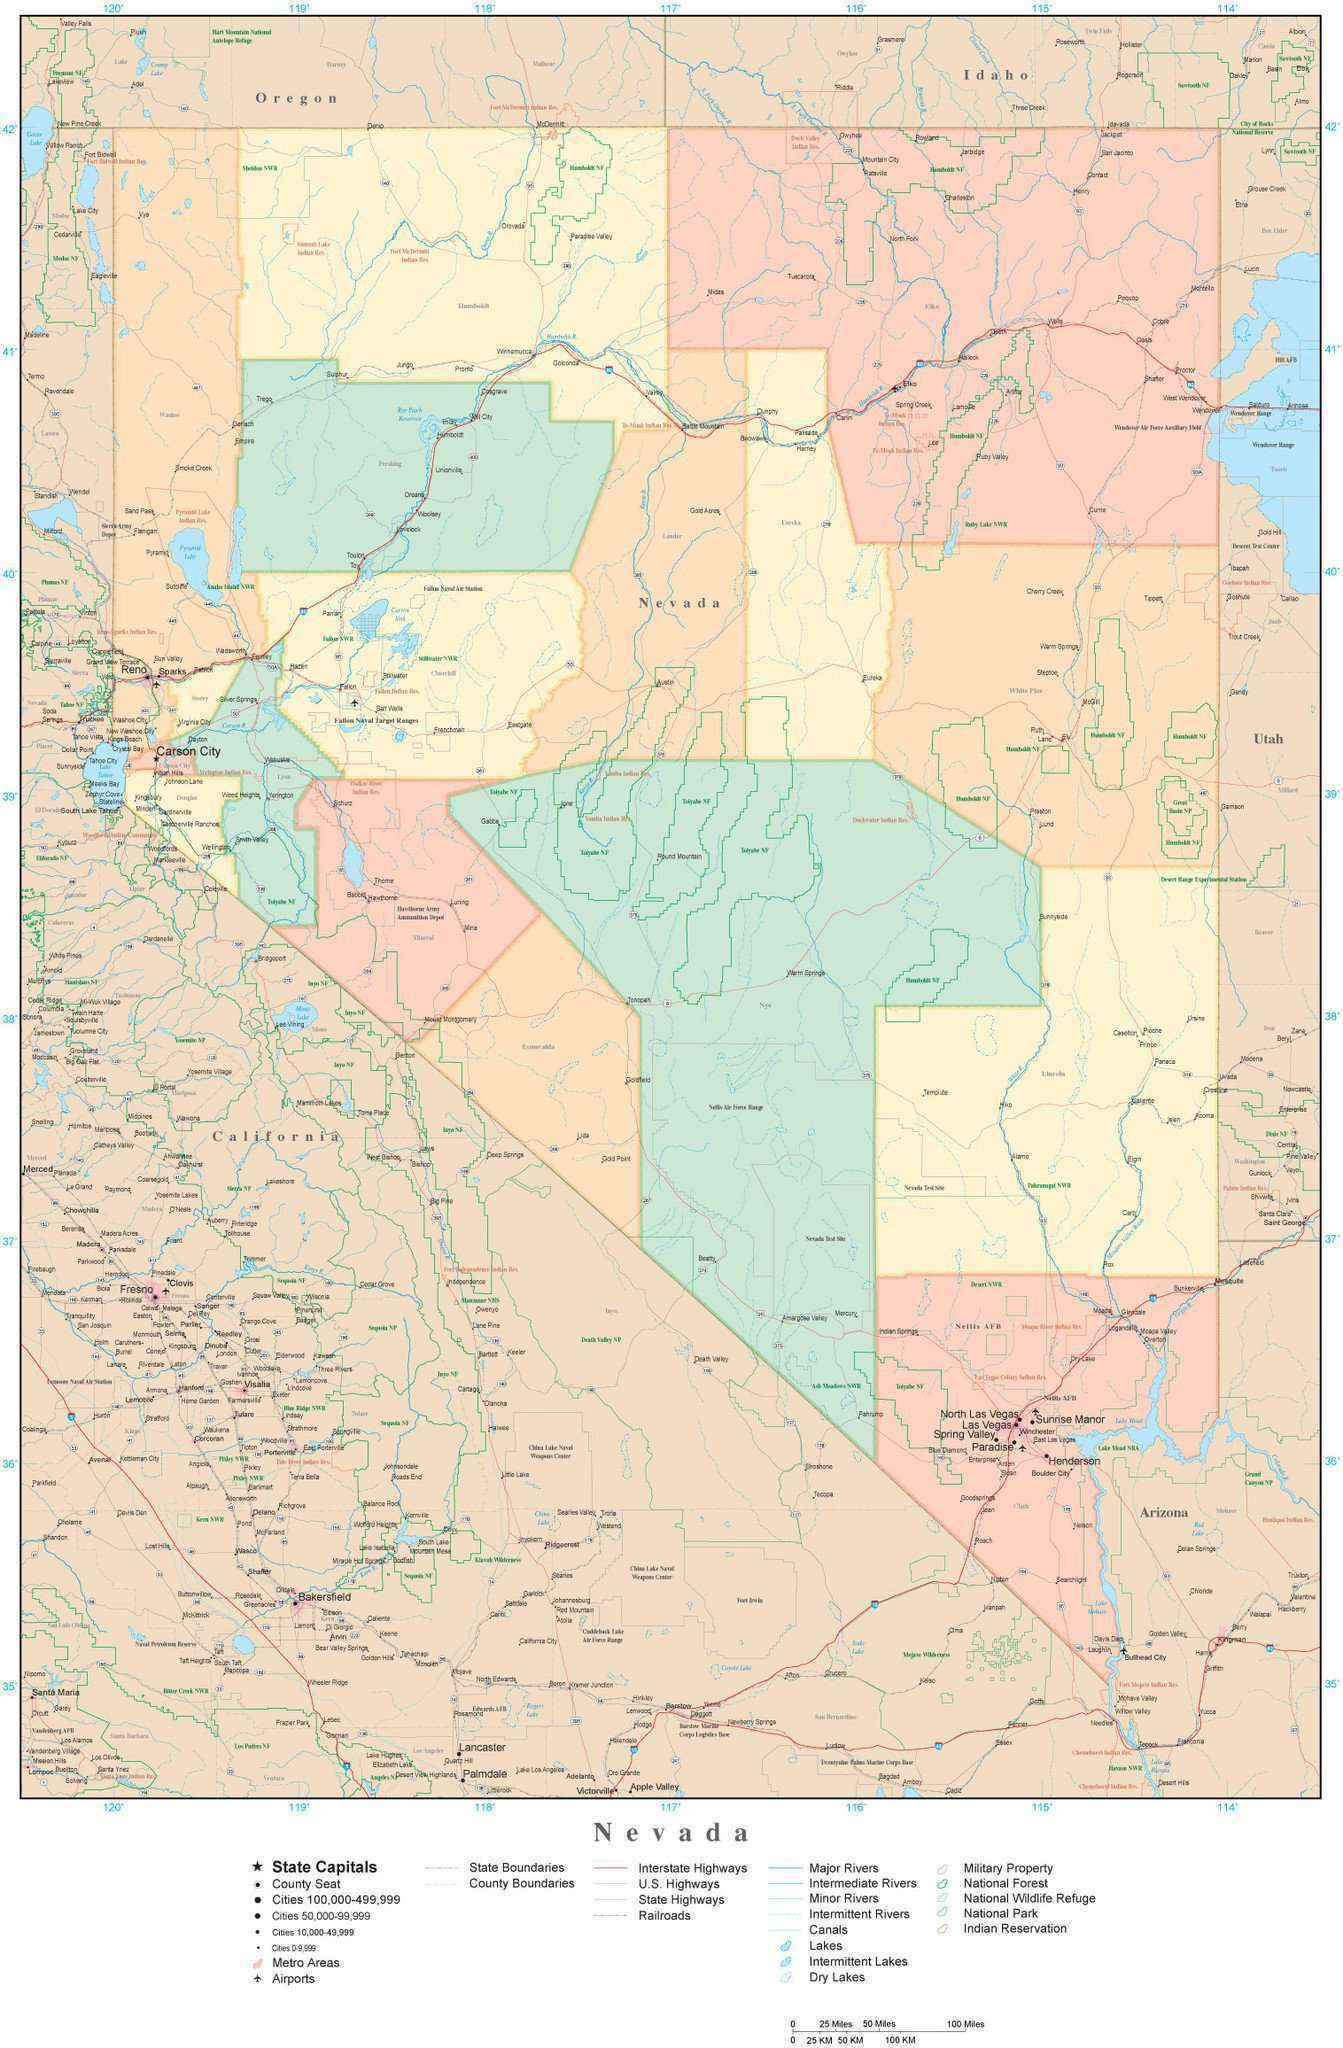 Detailed Nevada Digital Map with Counties, Cities, Highways, Railroads,  Airports, National Parks and more